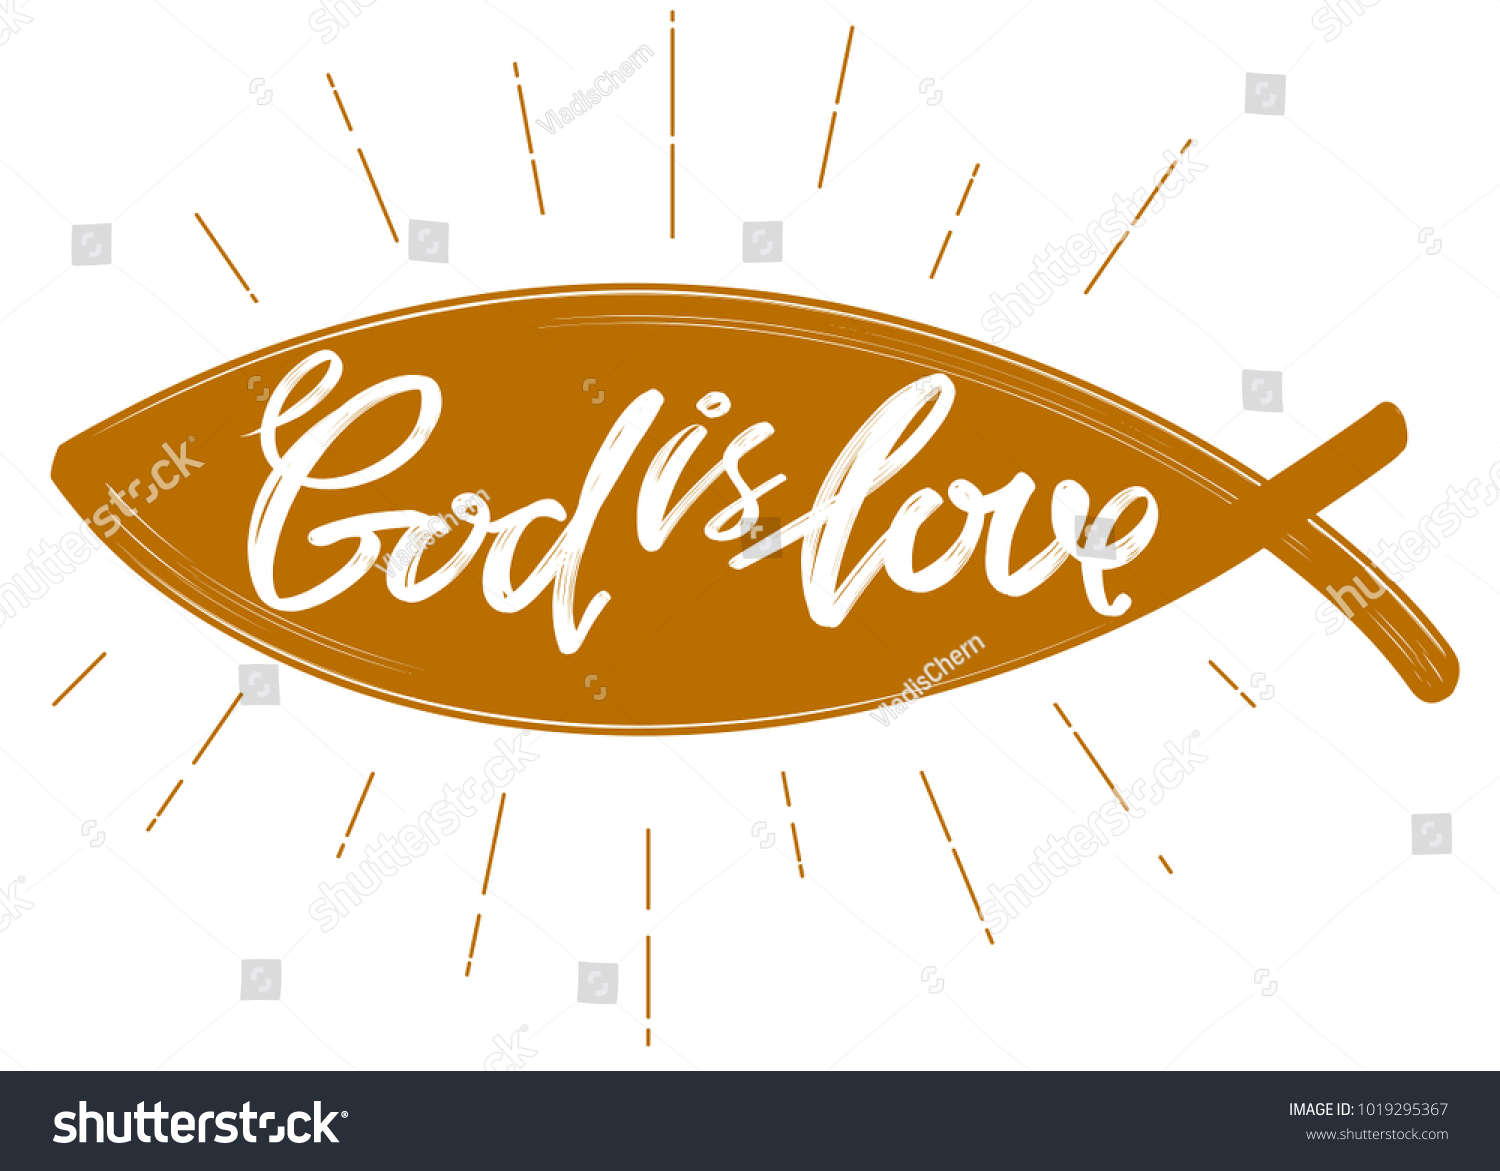 God love quote on background fish stock vector 1019295367 god is love the quote on the background of the fish calligraphic text symbol of biocorpaavc